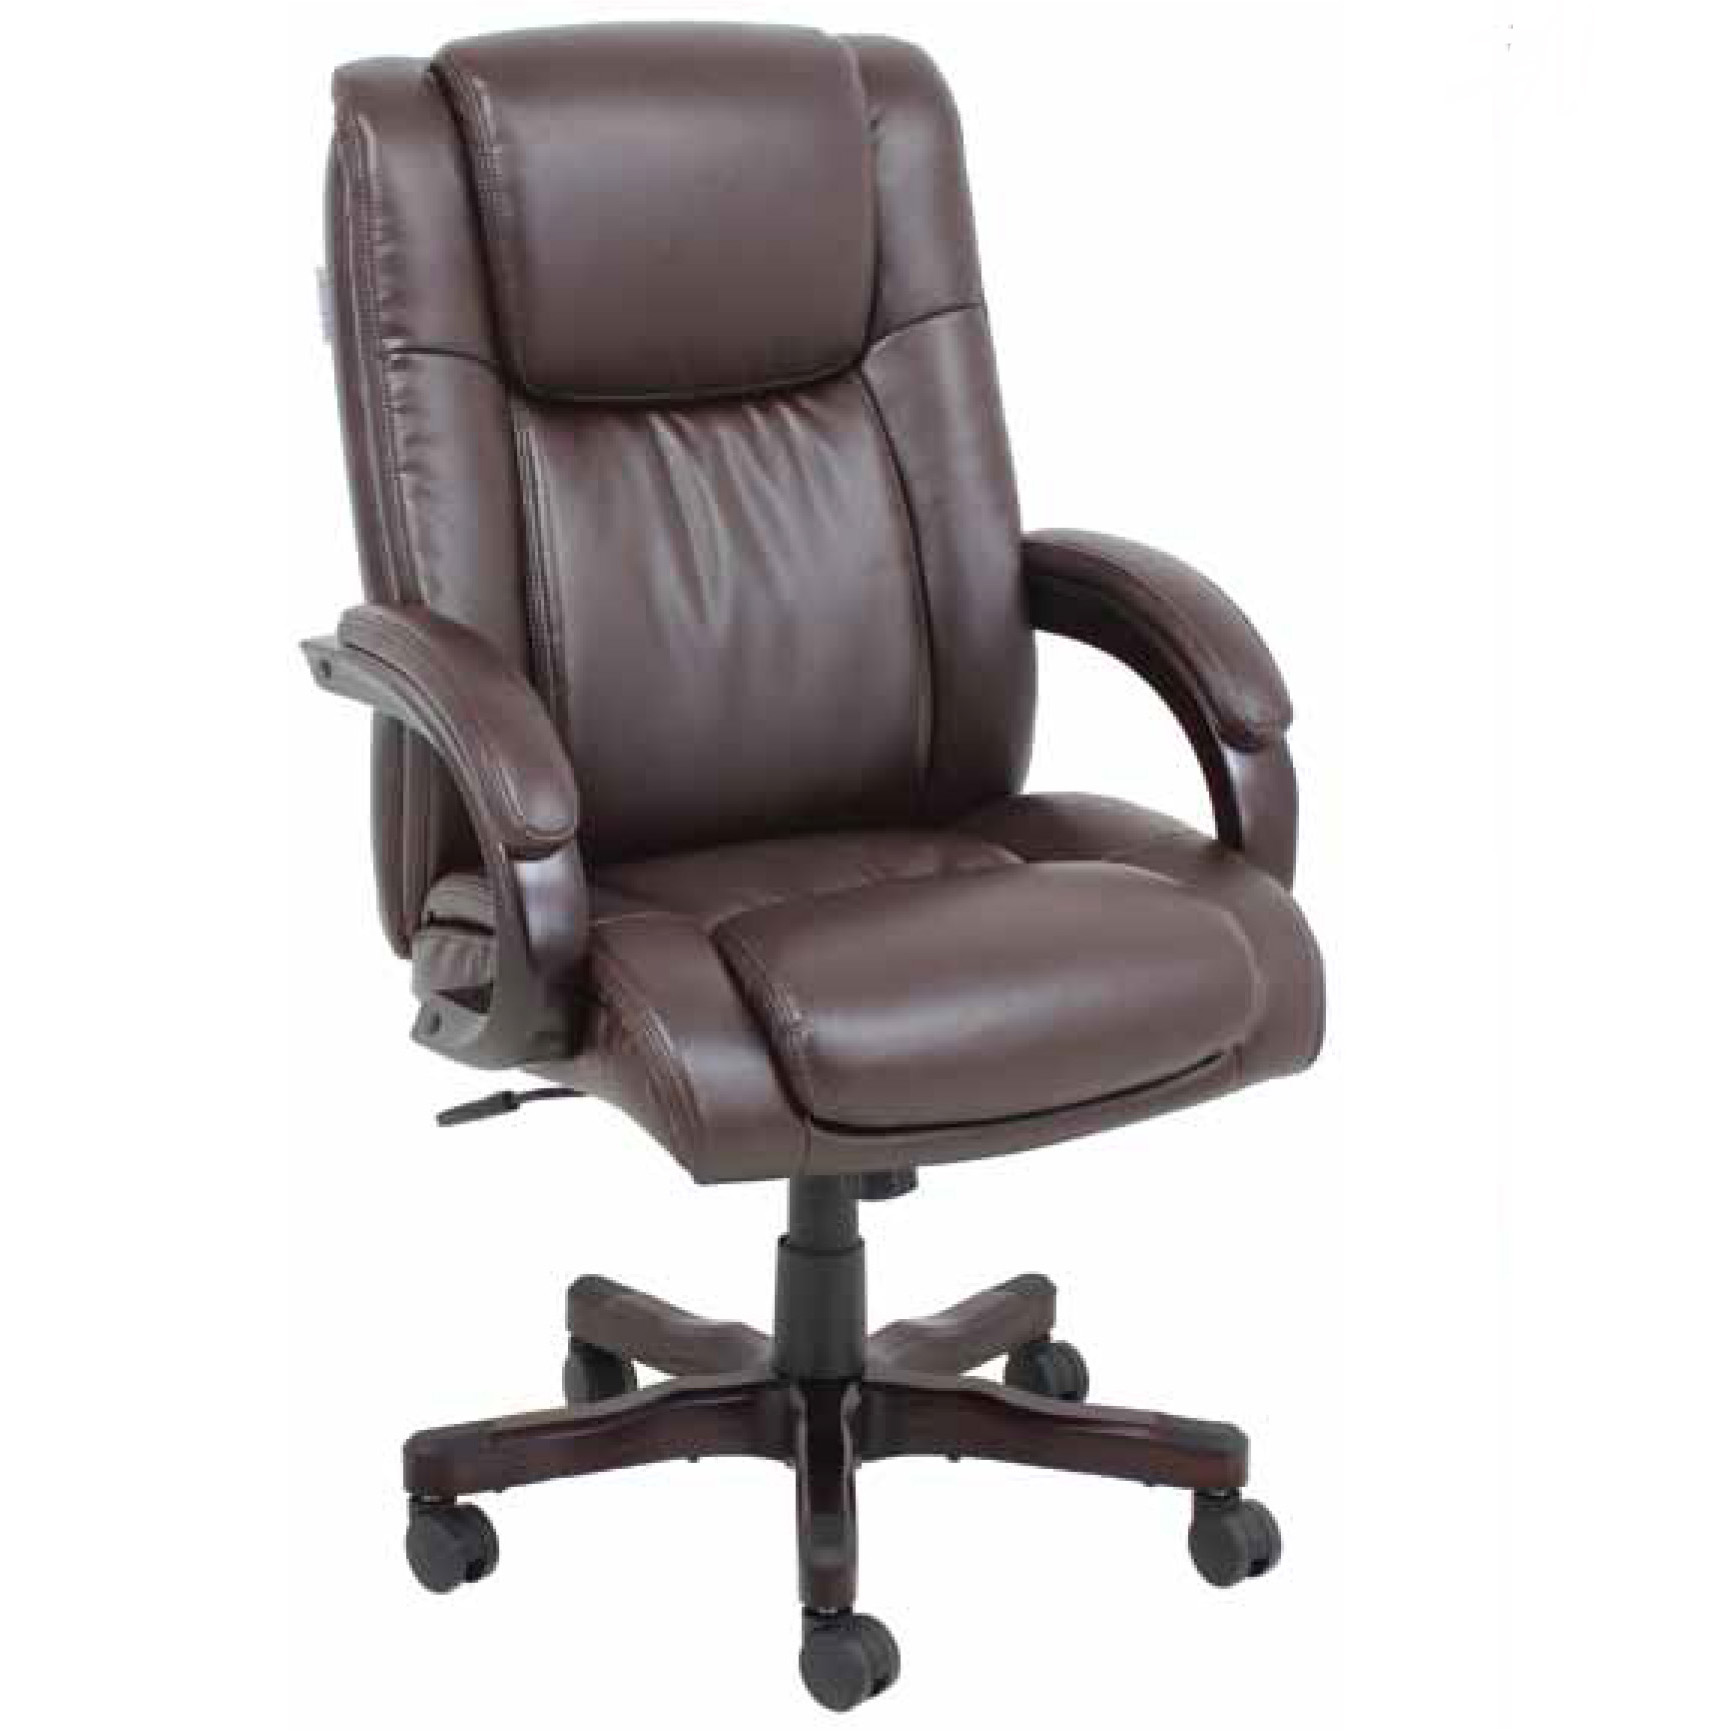 barcalounger titan ii office chair barcalounger titan ii office chair leather office chairs stunning bedroomastonishing armless leather desk chair chairs uk